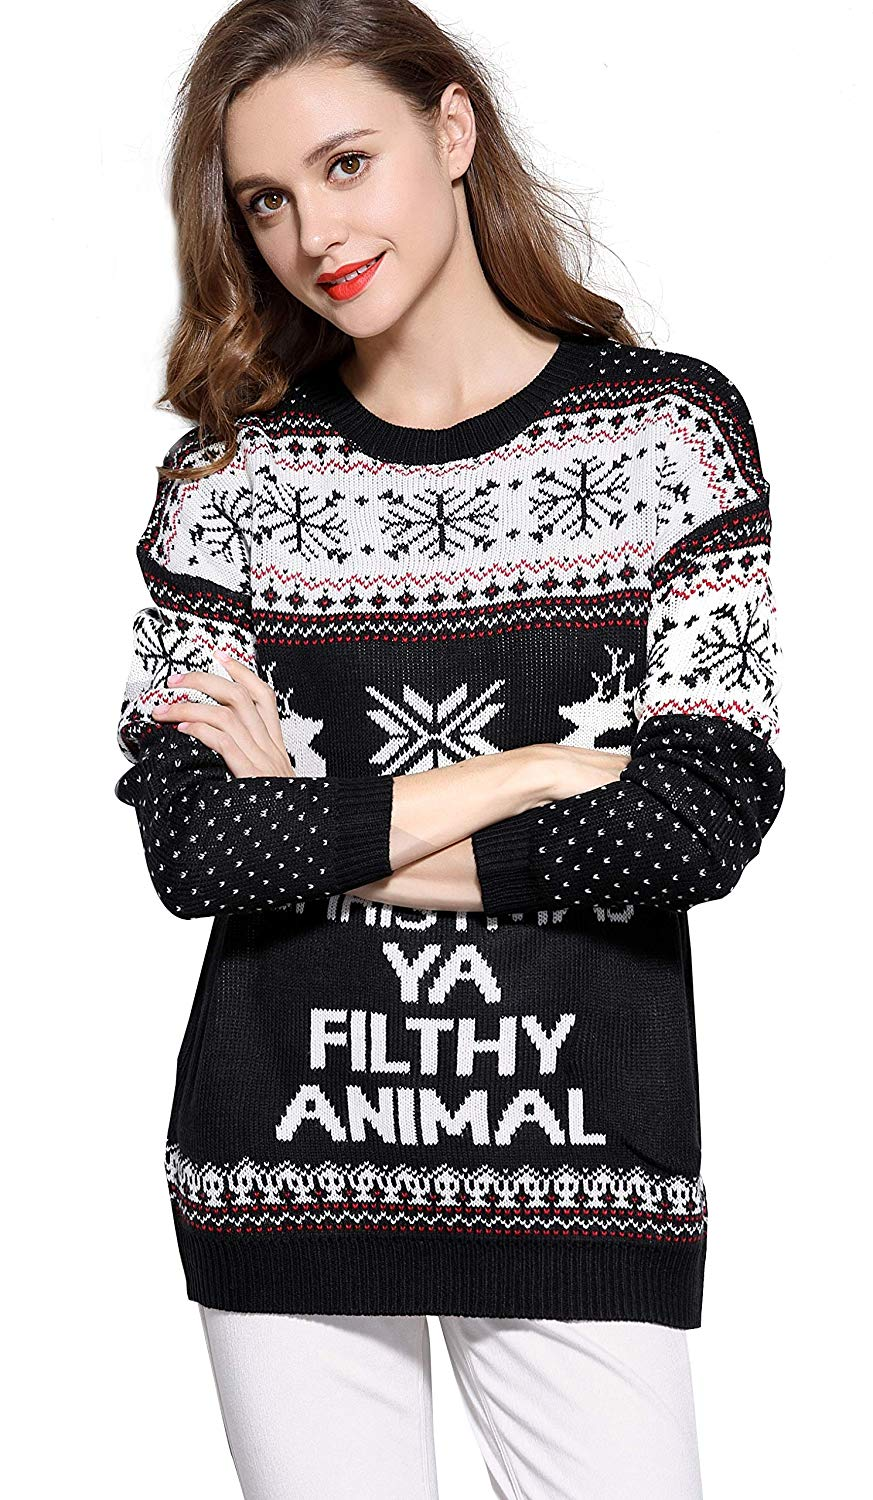 Women's Christmas Reindeer Snowflakes Sweater Pullover 02